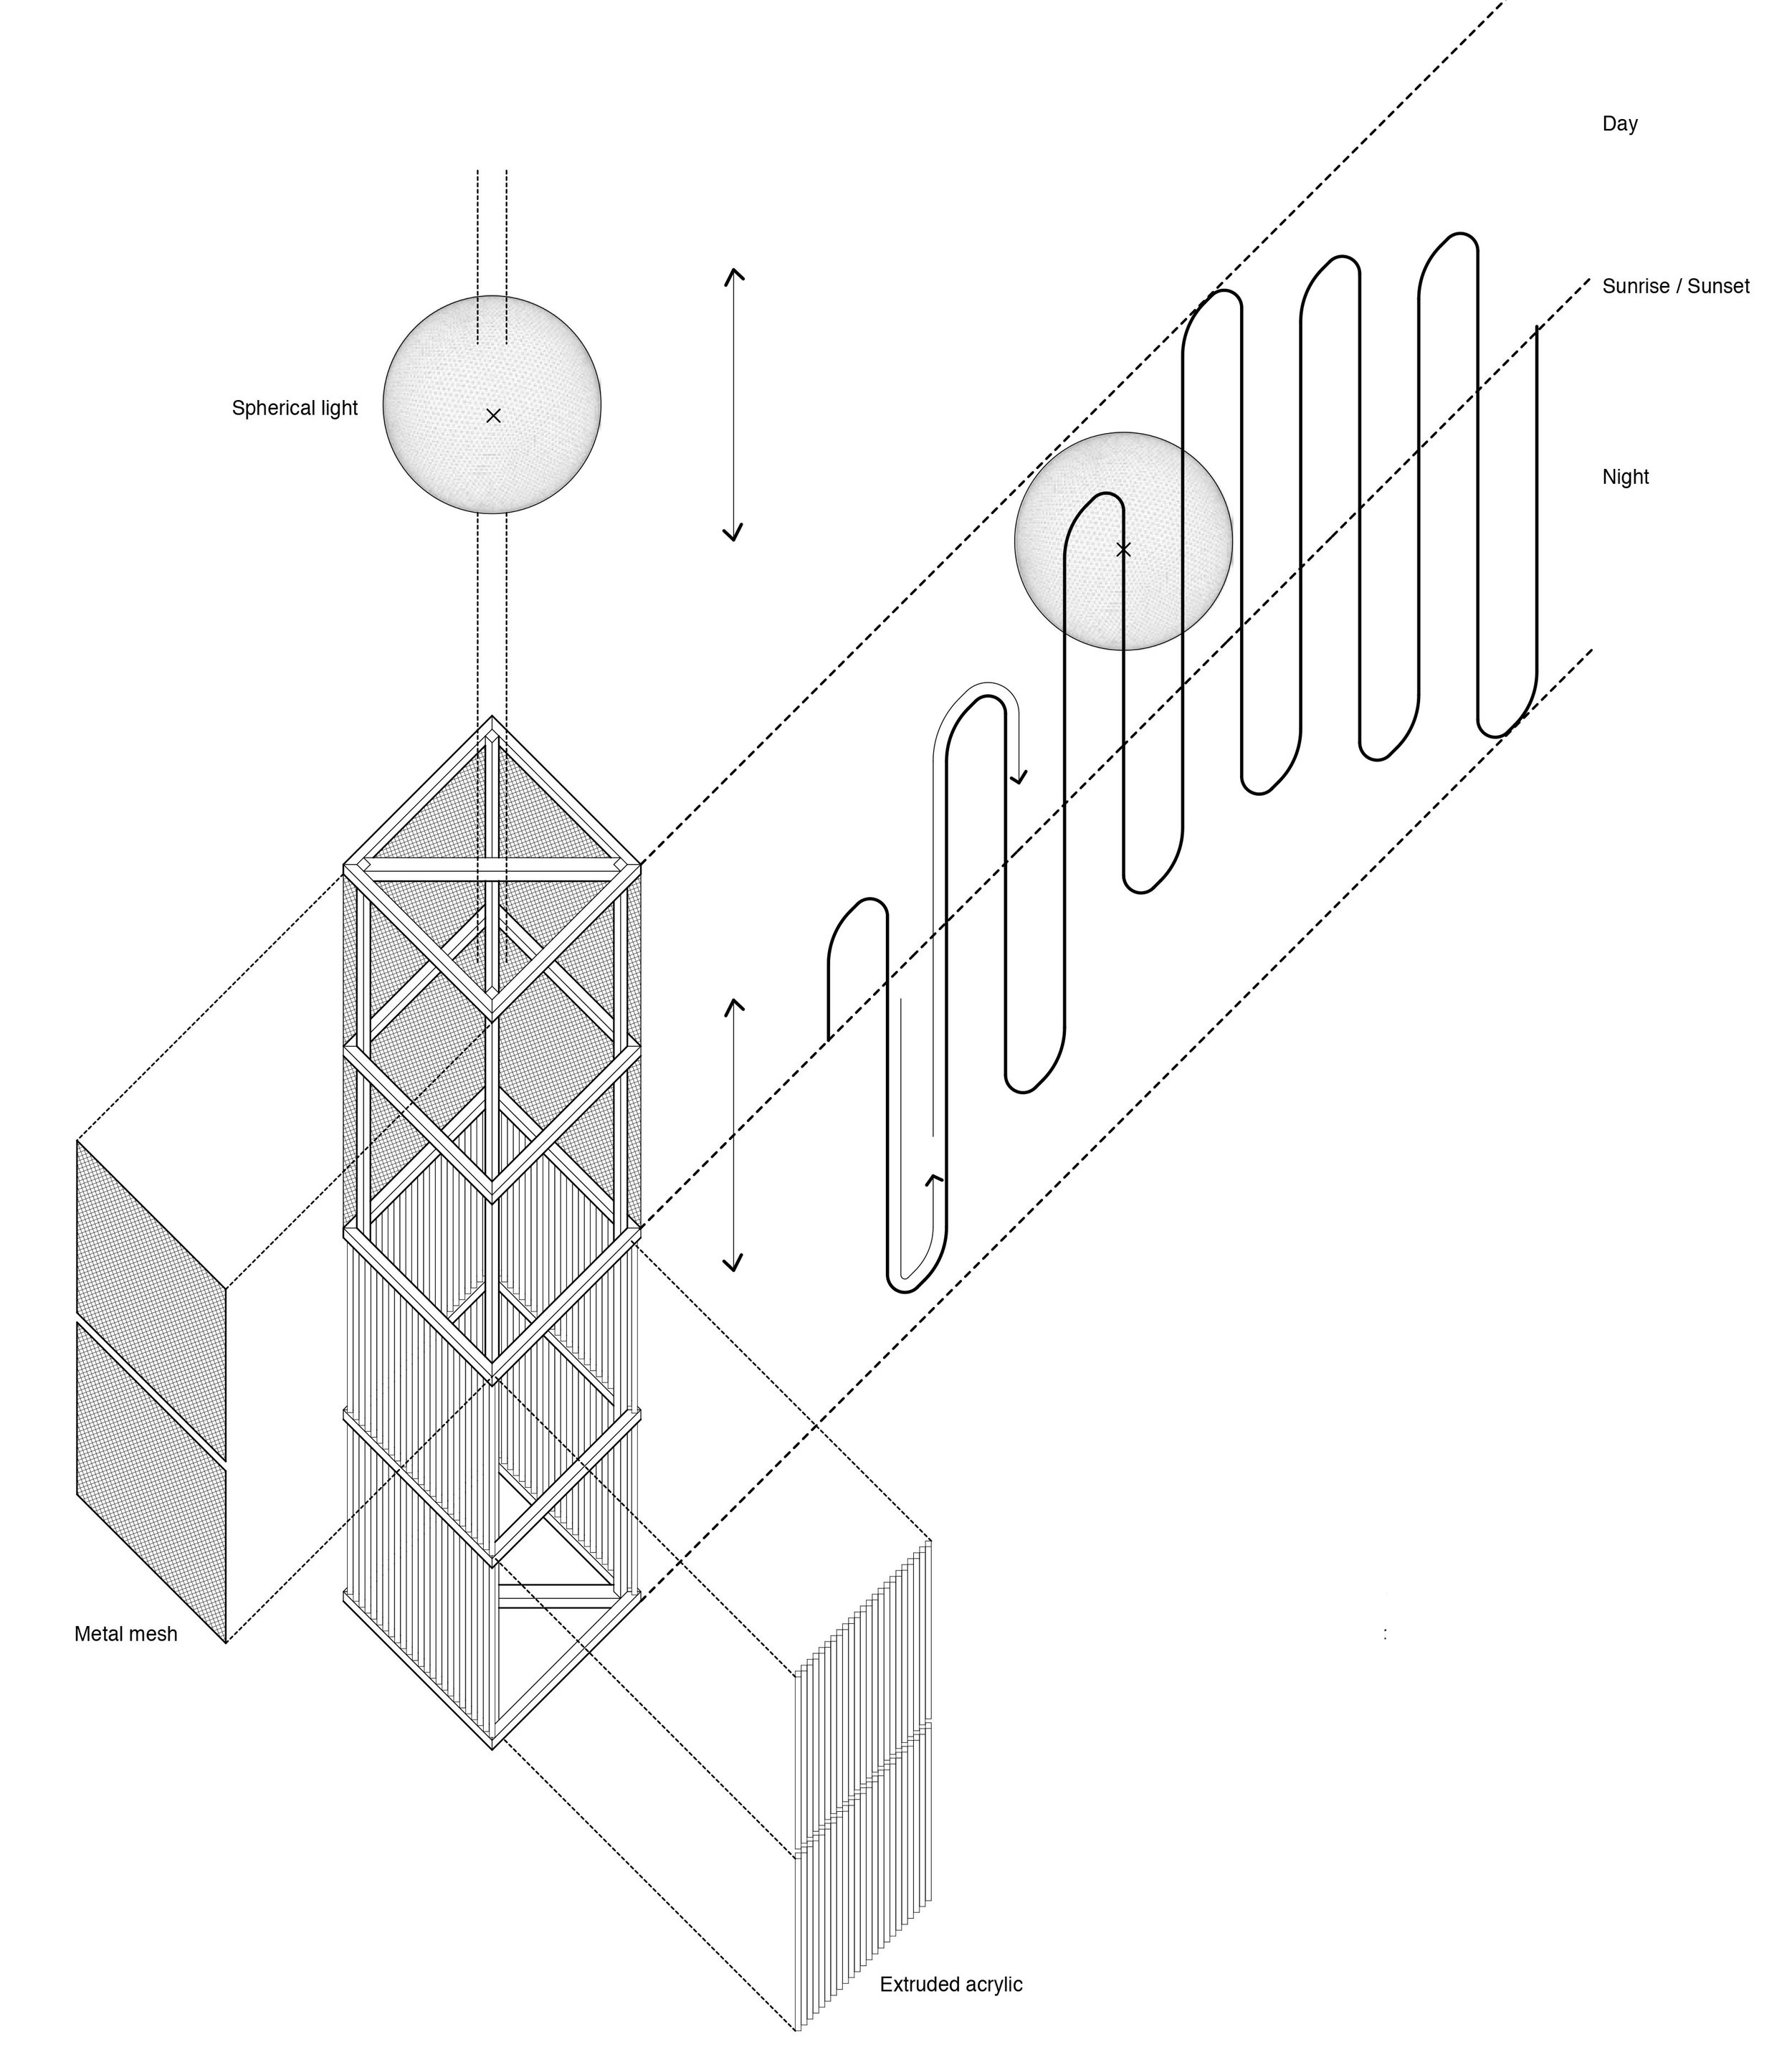 Exploded axonometric detailing the components of the structure and the movement of the sphere